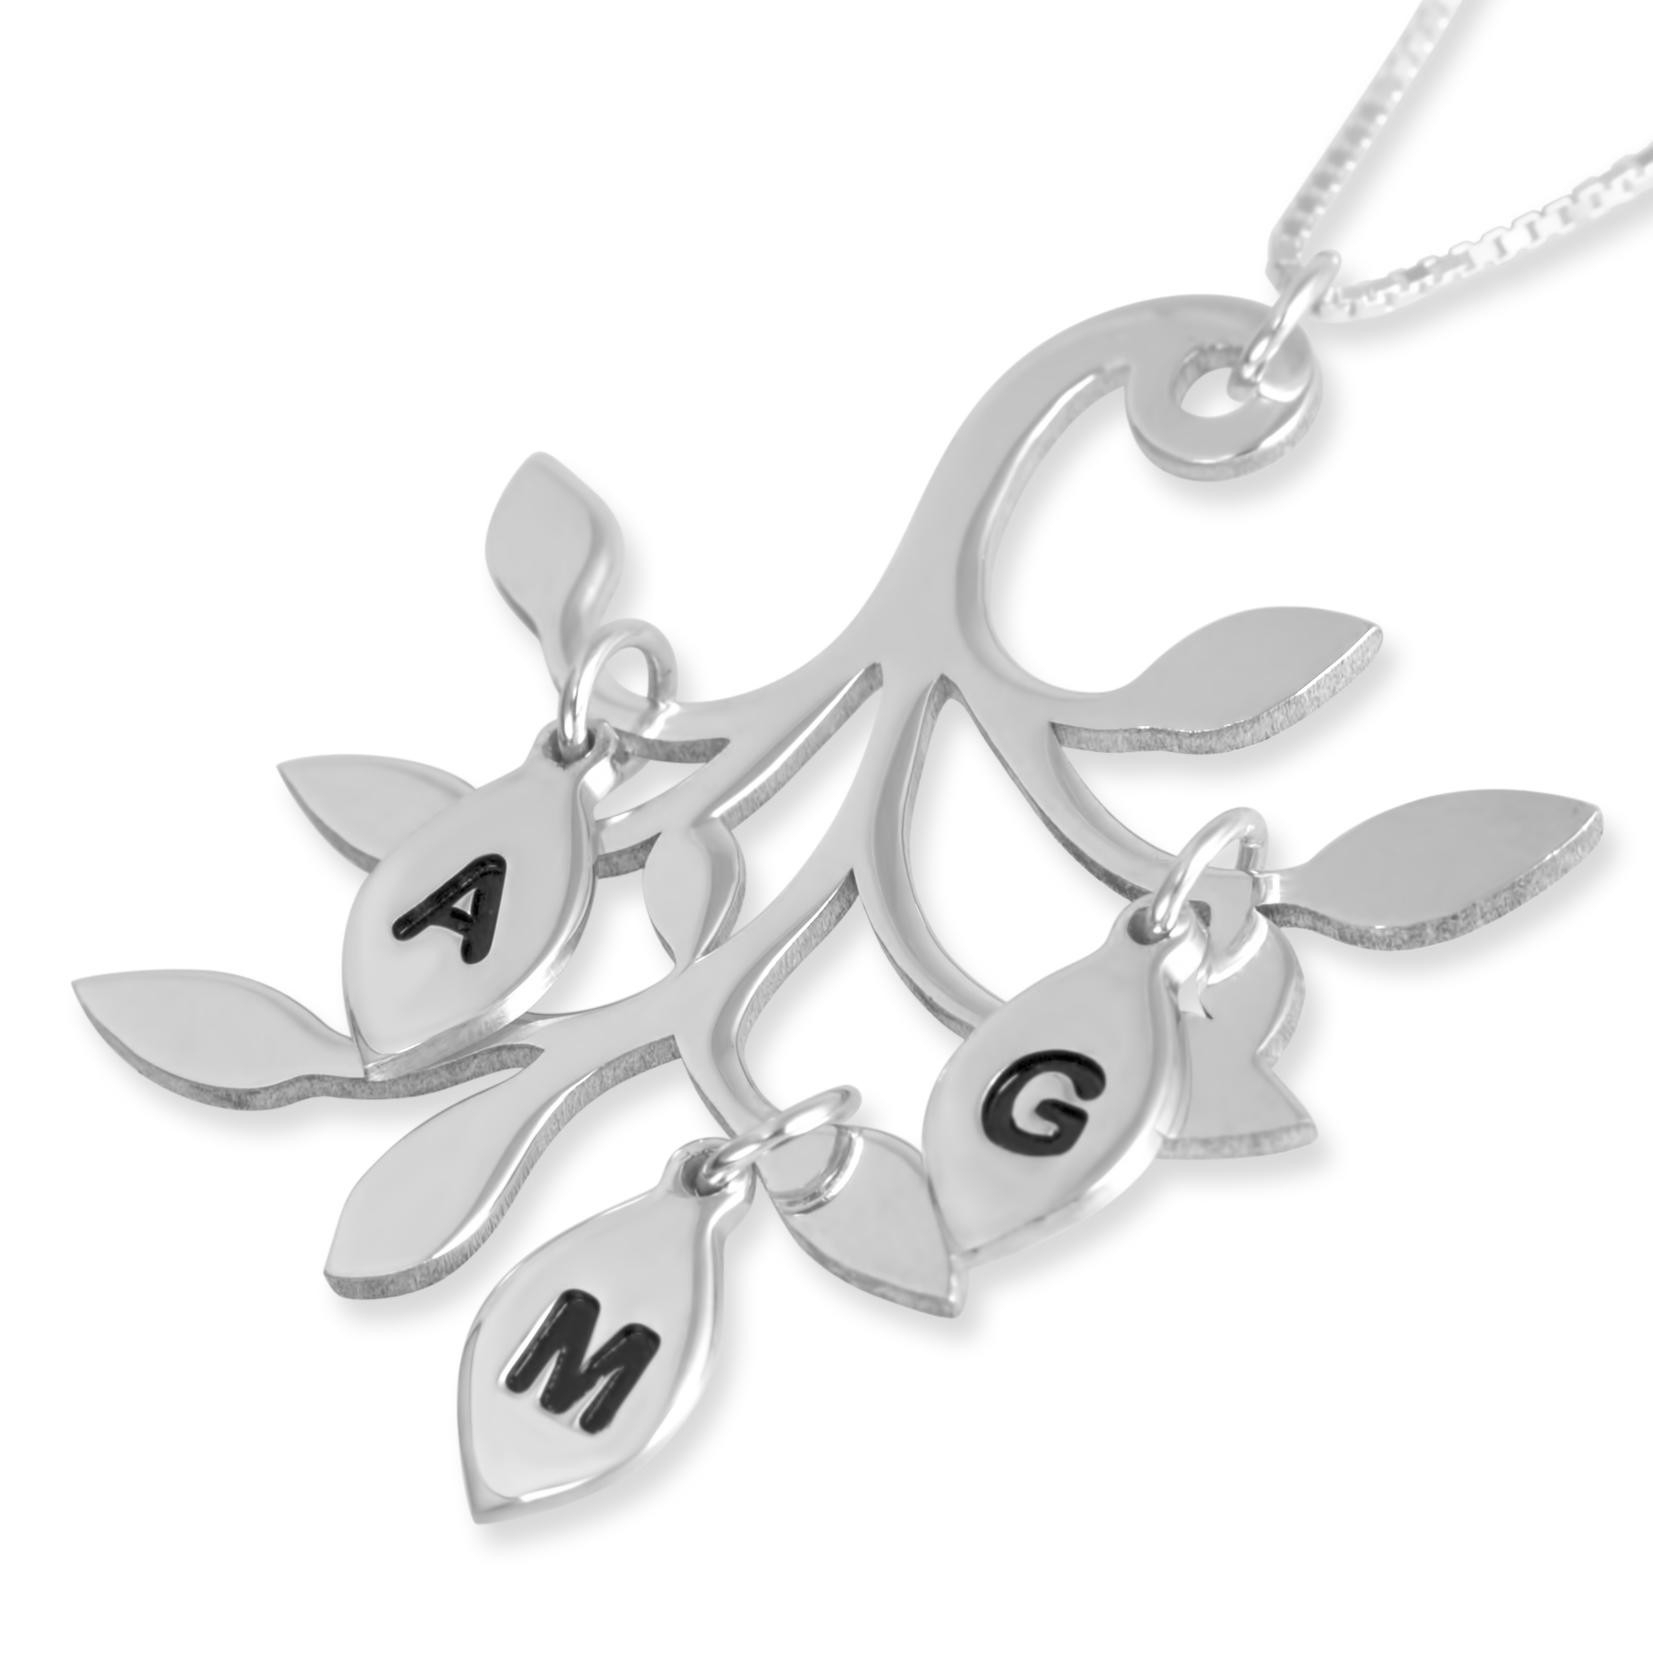 Mother's Necklace Family Tree Pendant, Large, Sterling Silver Intended For Newest Sparkling Family Tree Necklaces (View 11 of 25)